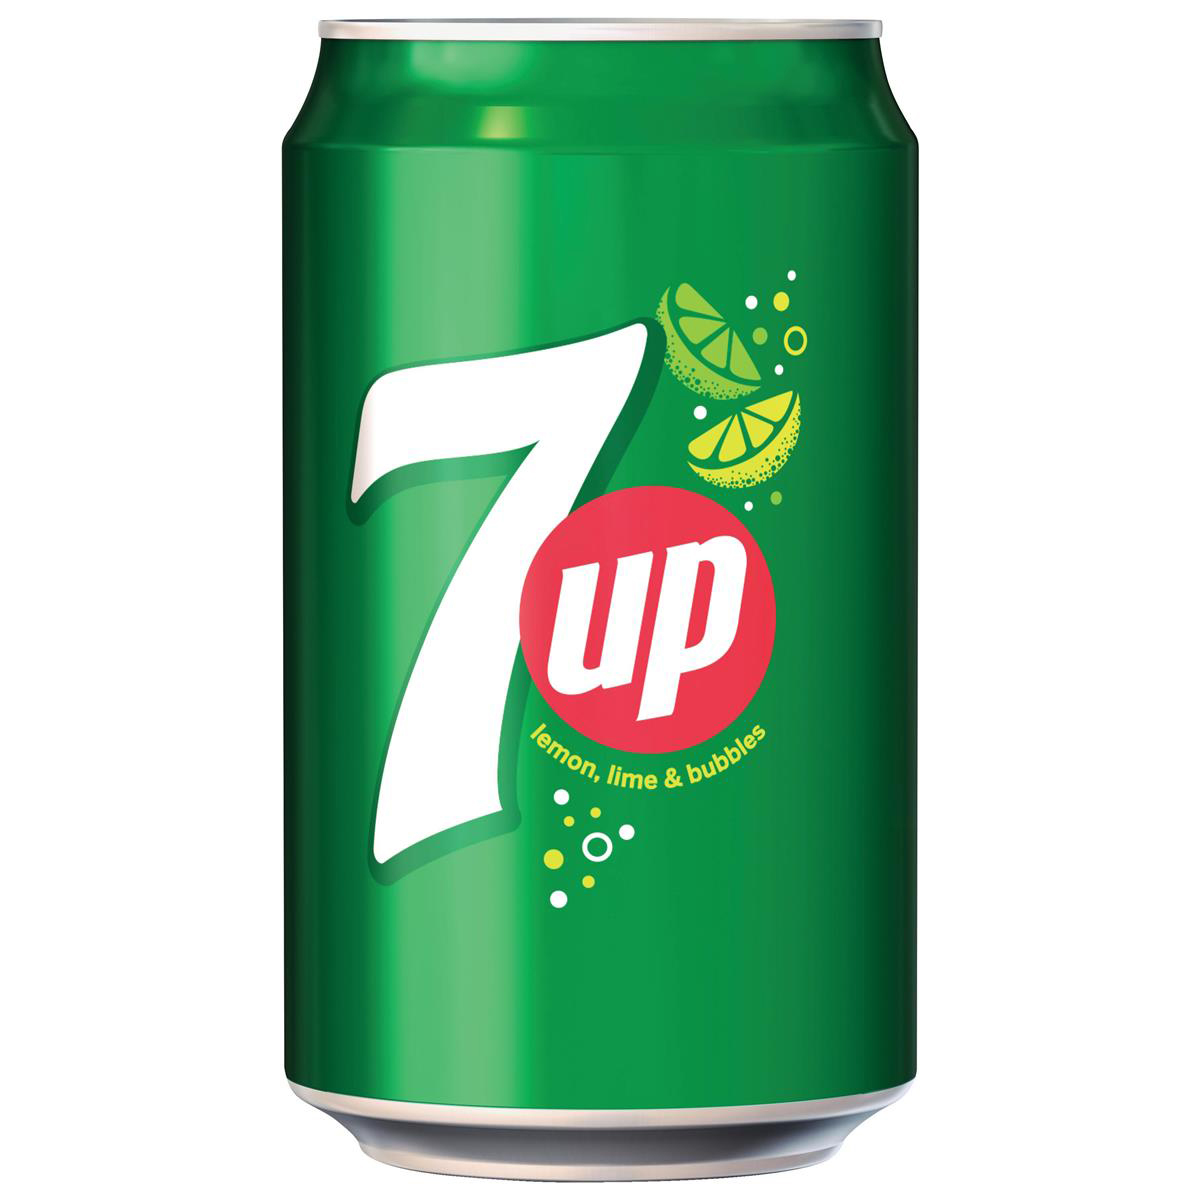 7UP Original Lemon and Lime Soft Drink Can 330ml Ref 203388 Pack 24